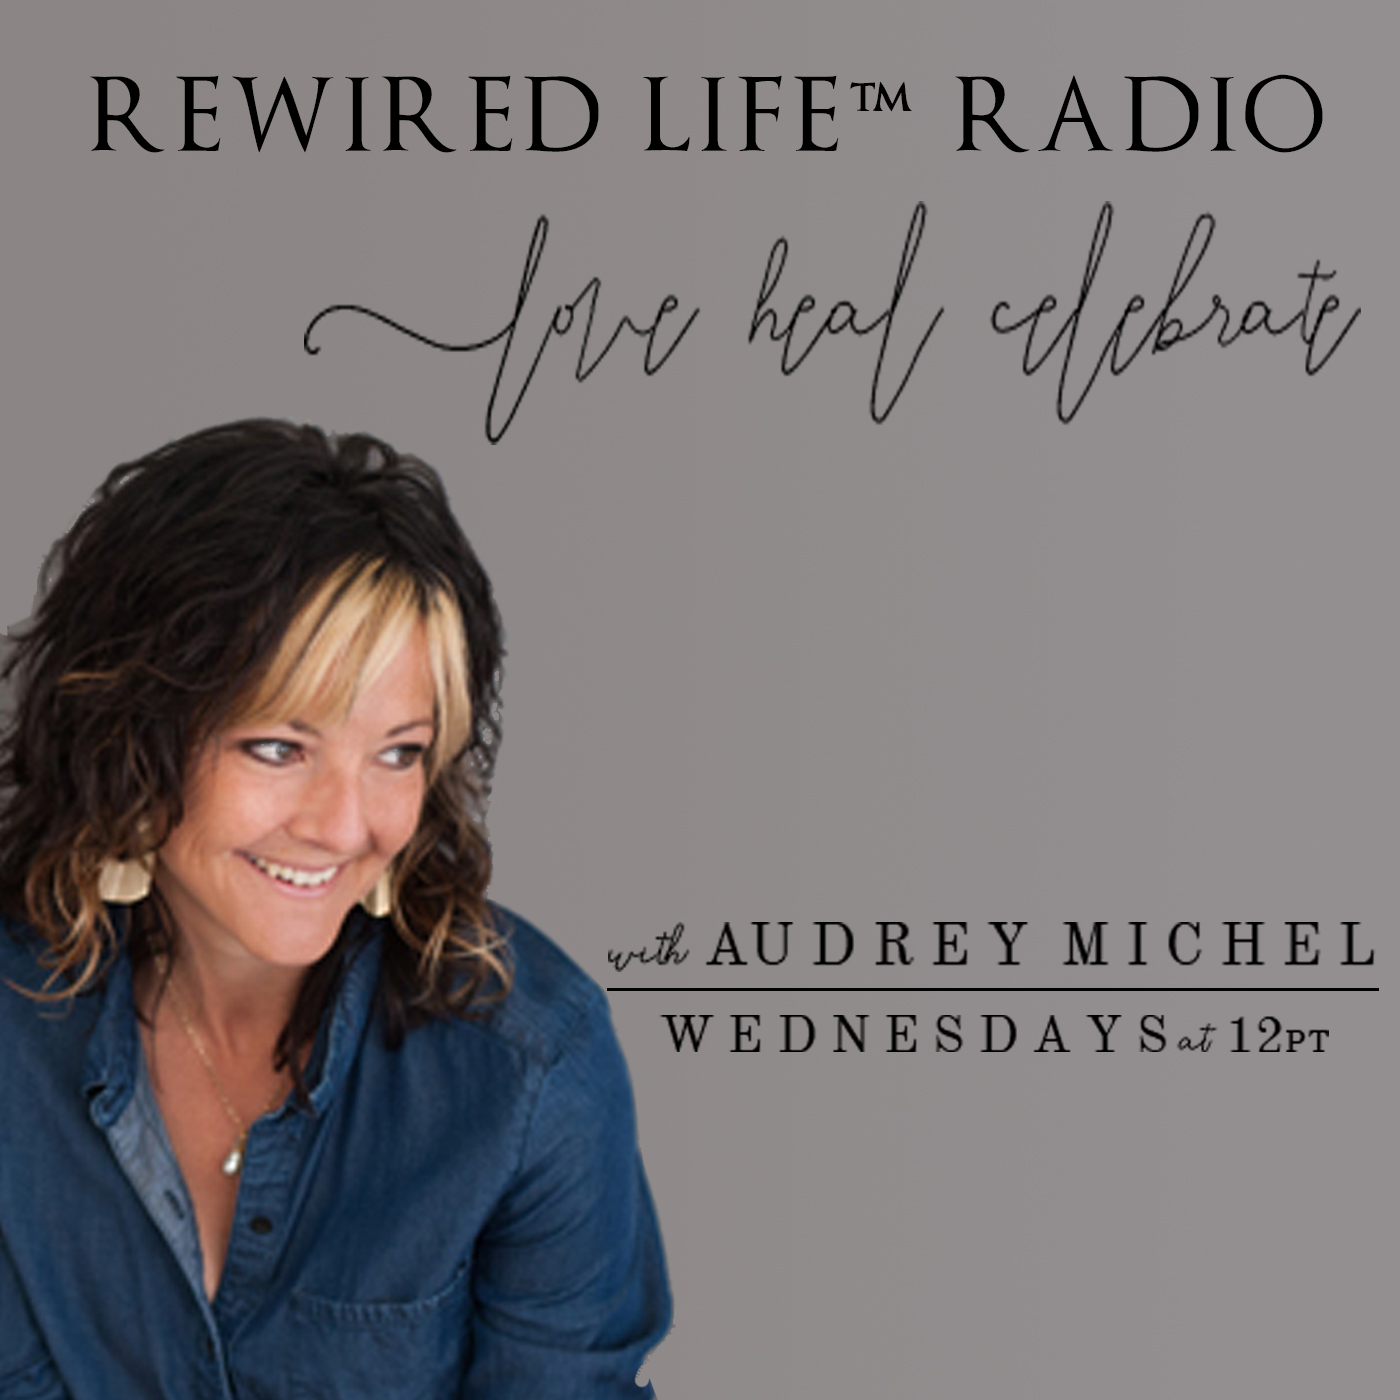 Rewired Life Radio with Audrey Michel